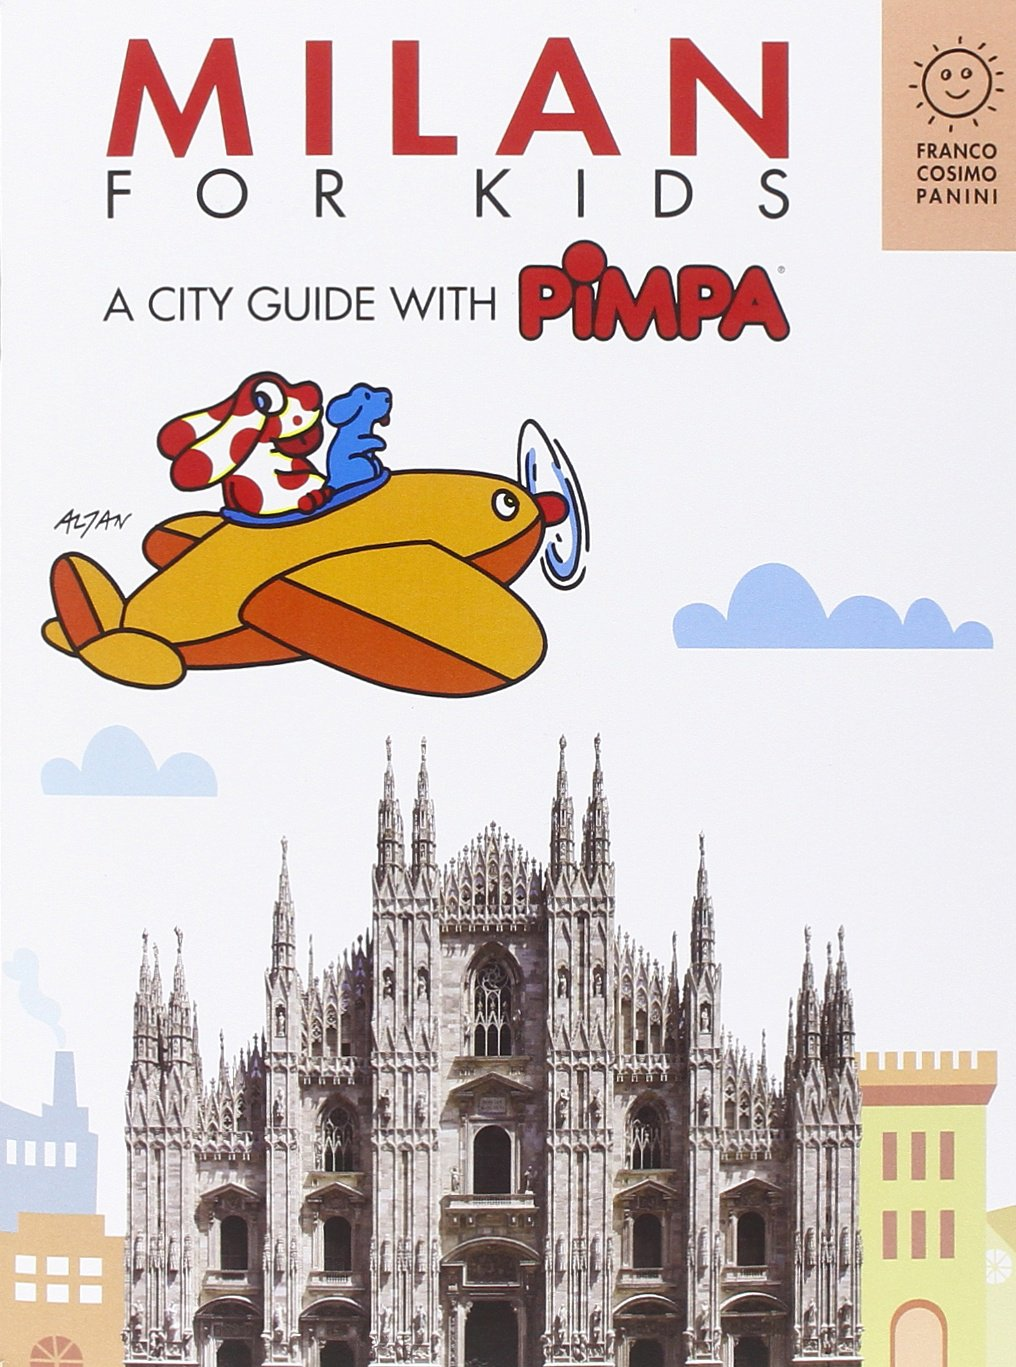 Milan for kids. A city guide with Pimpa